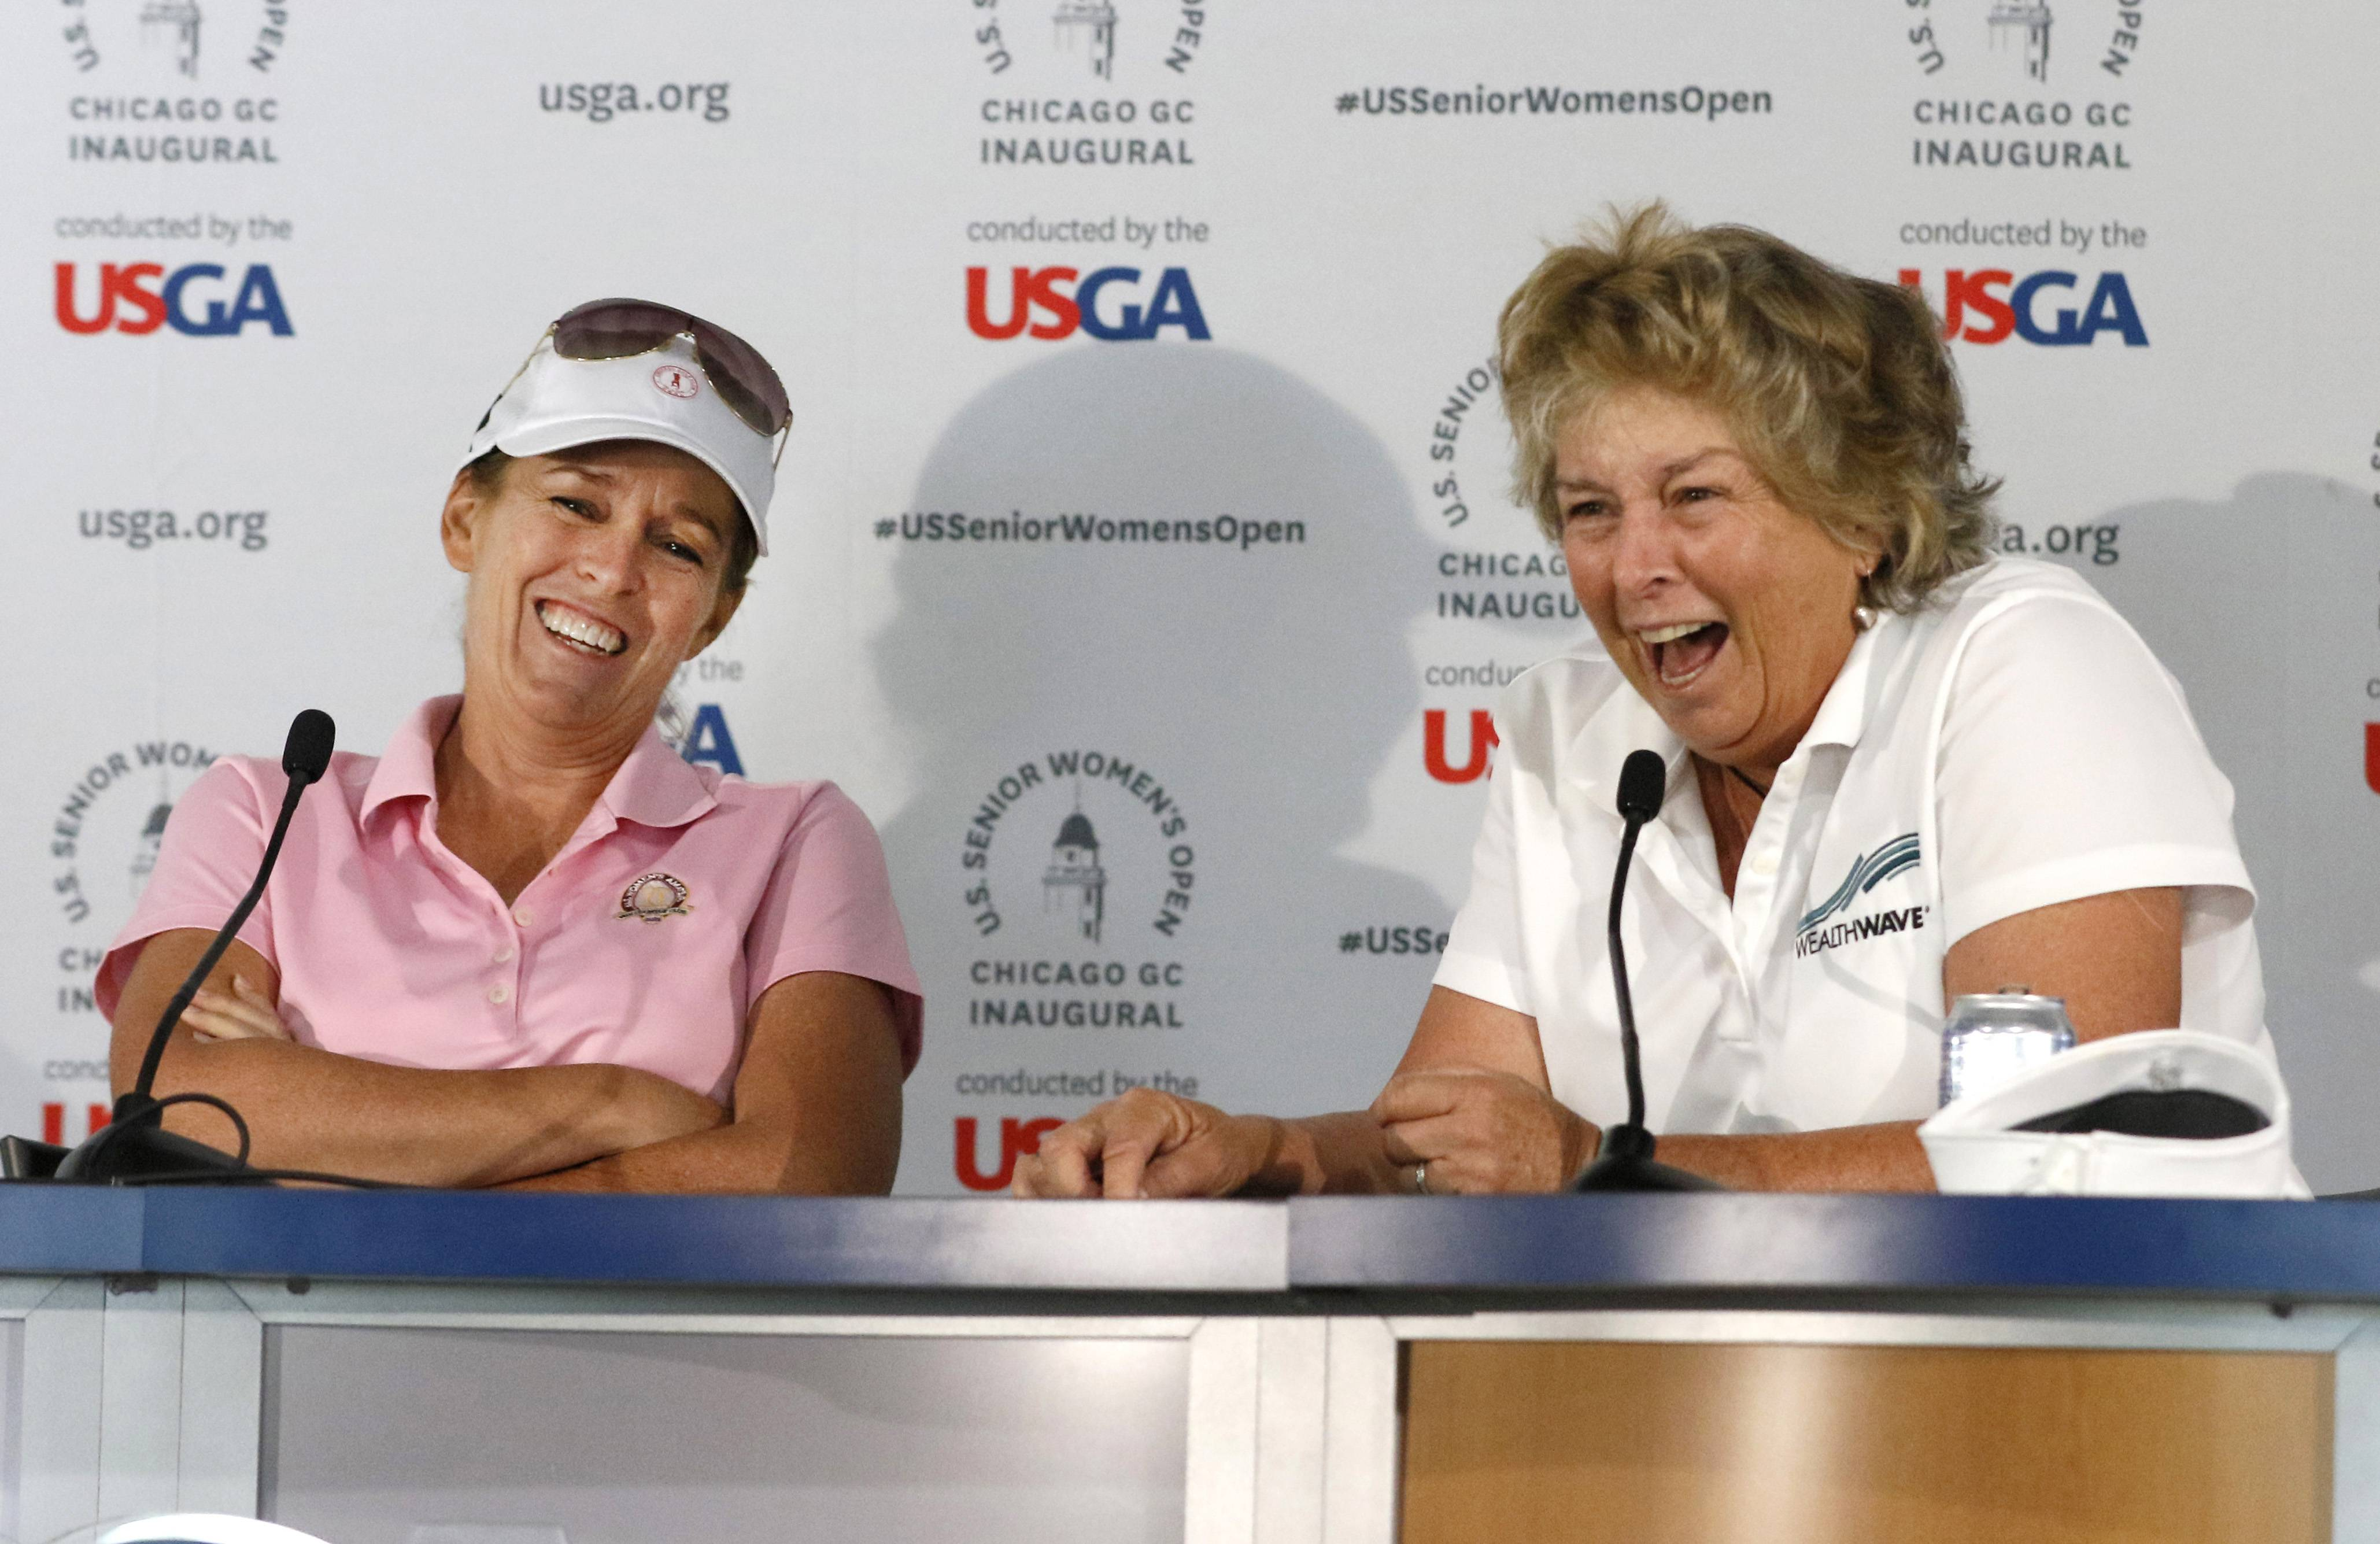 Daniel White/dwhite@dailyherald.comU.S. Senior Women's Open golfers Martha Leach, left, and her sister Hollis Stacy, right, talk about the inaugural U.S. Senior Women's Open at the Chicago Golf Club in Wheaton.